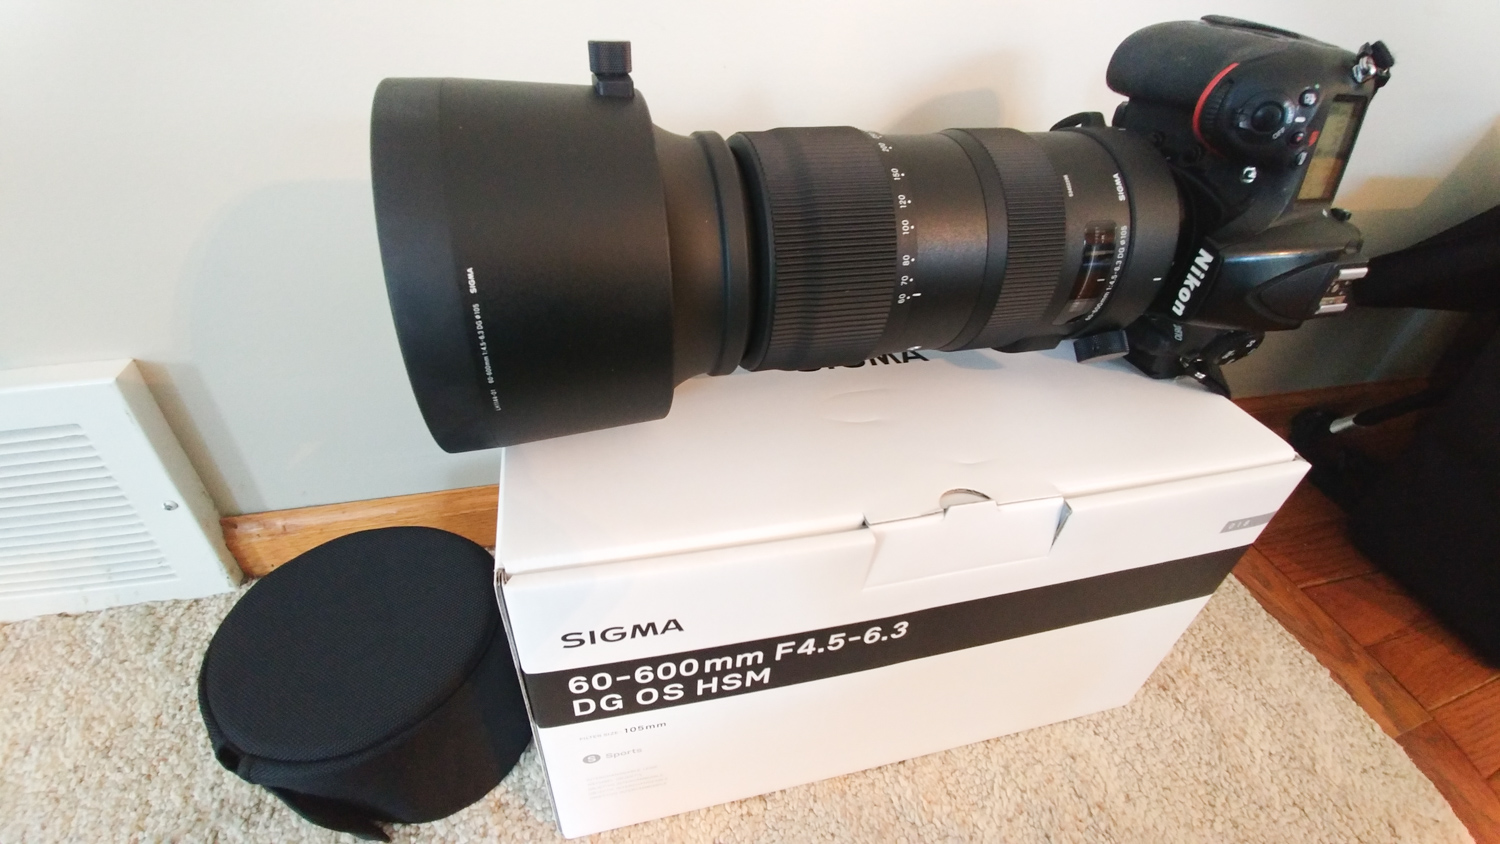 Sigma Soft Padded Case for 500mm f//4 DG OS HSM Sports Lens